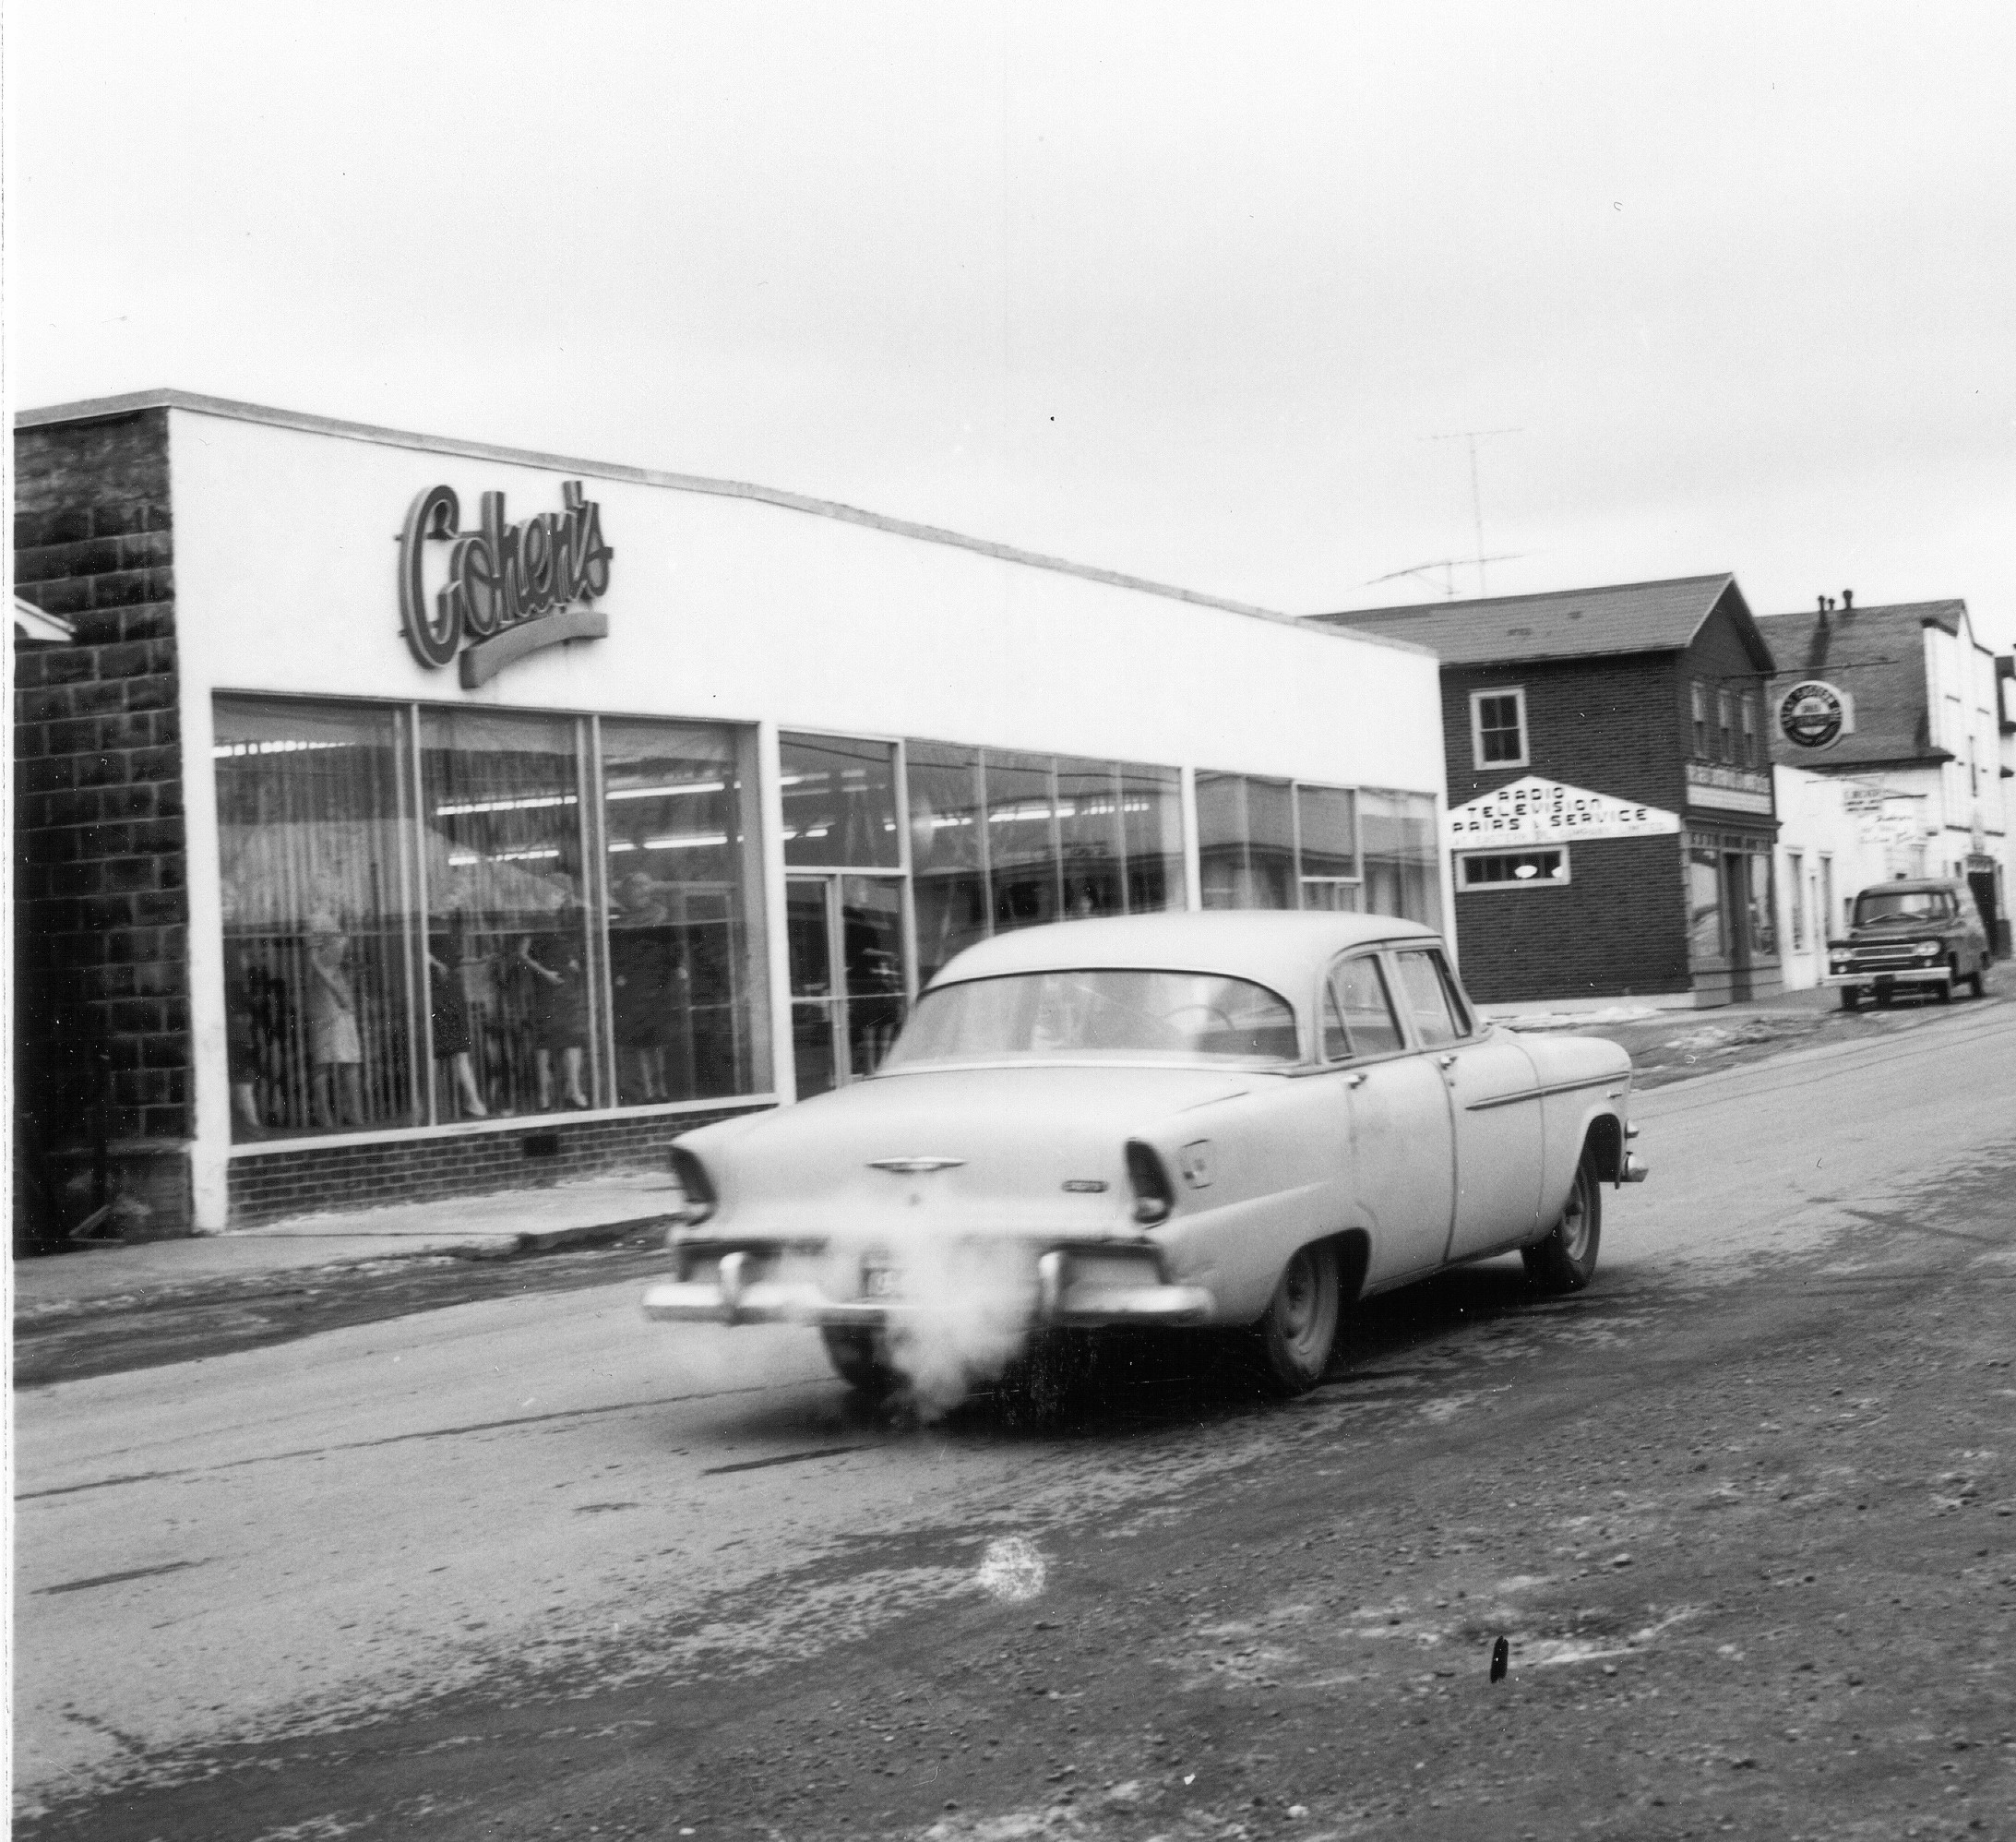 Black and white archival photograph. Street view. Cohen's, Main Street looking east towards Great Eastern Oil, and E. Becker's shop. Women's manikins visible in the windows on the left side of Cohen's main doors. Light car in the centre of the photo.